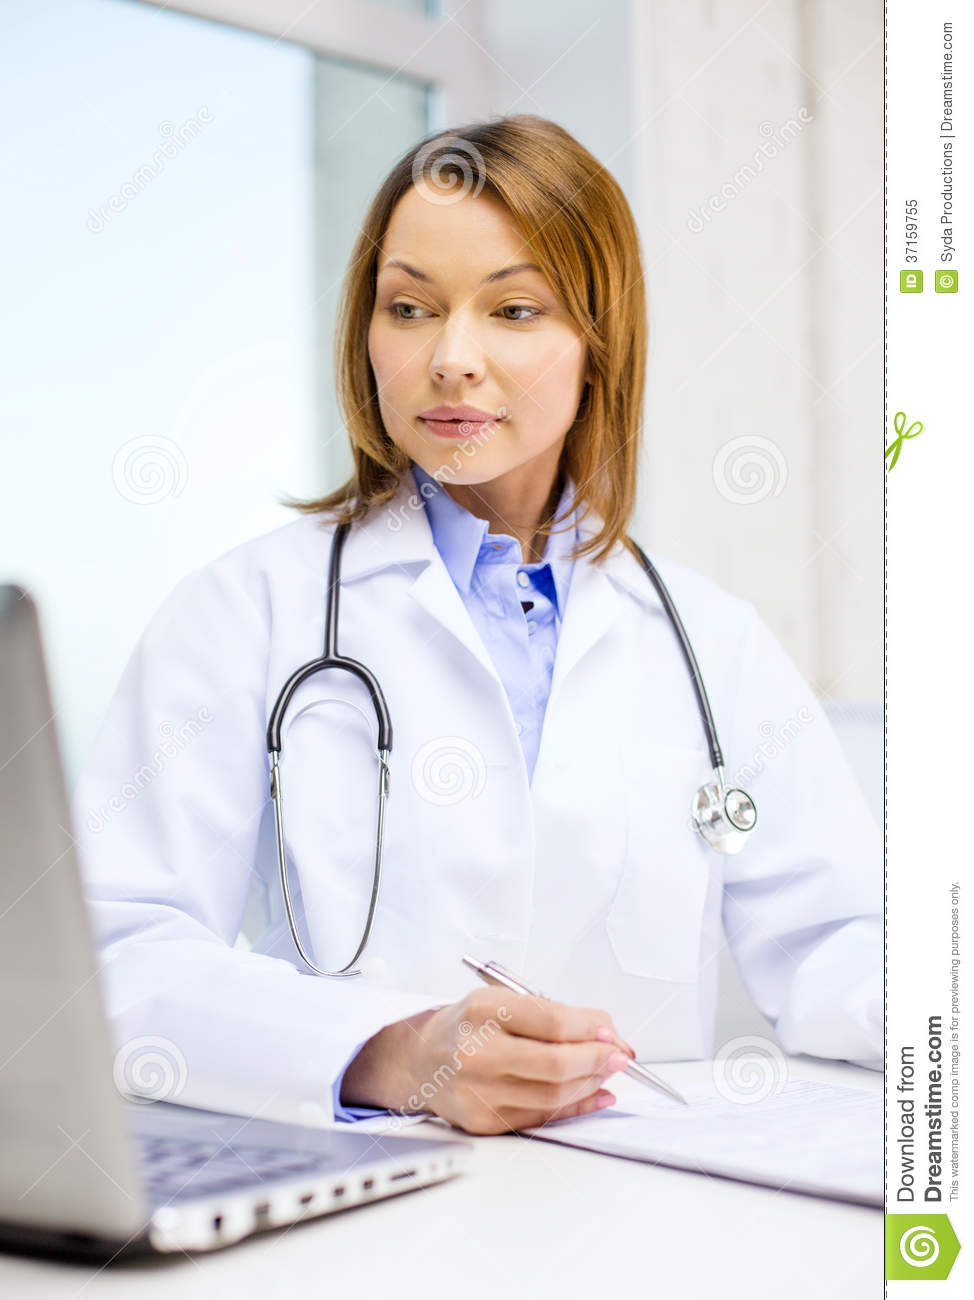 Busy Doctor With Laptop Computer And Clipboard Royalty ...